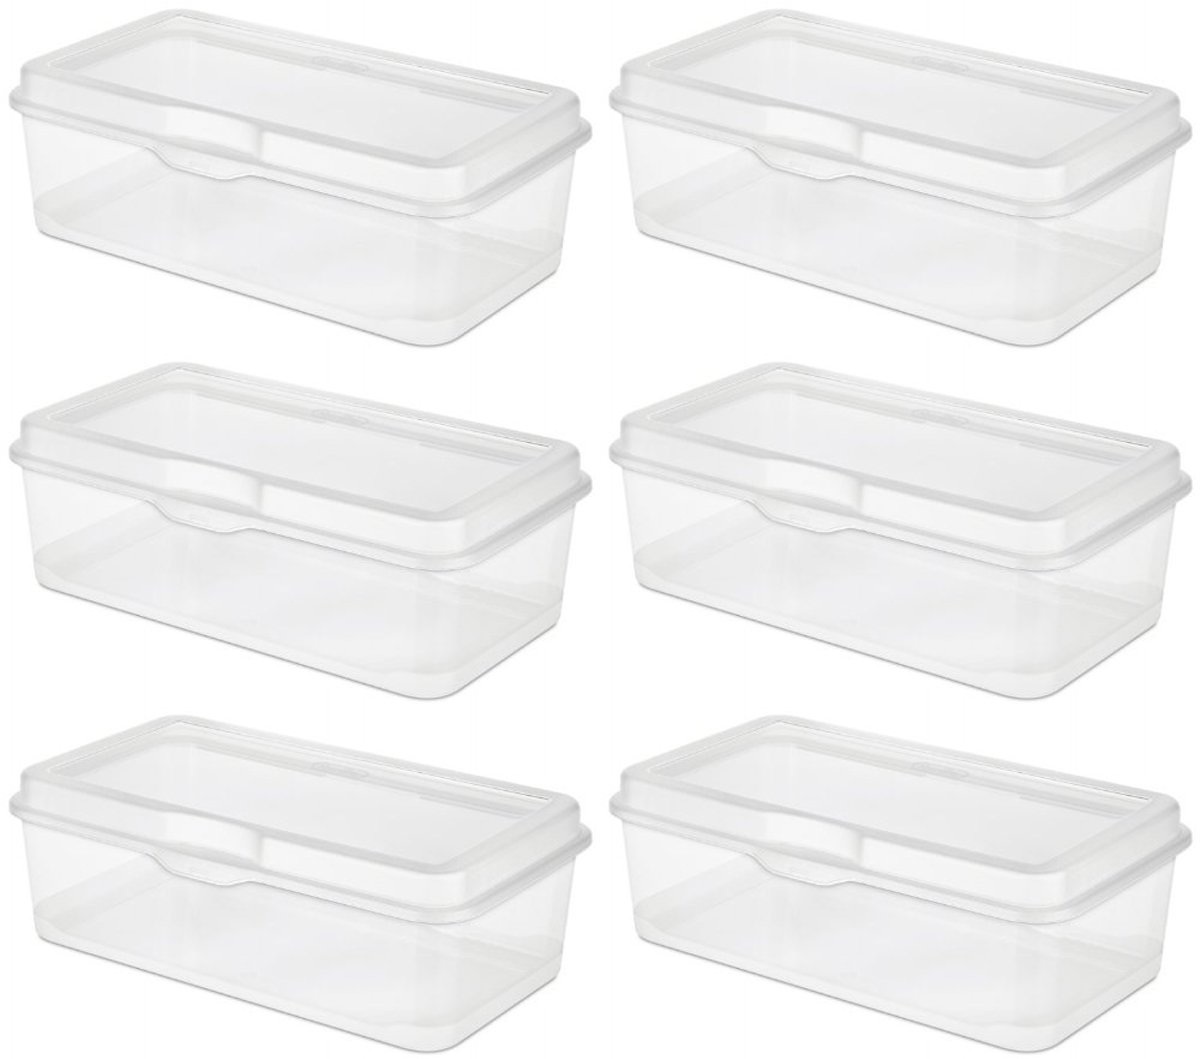 6 Pack) Sterilite 18058606 Plastic FlipTop Latching Storage Box Container  Clear